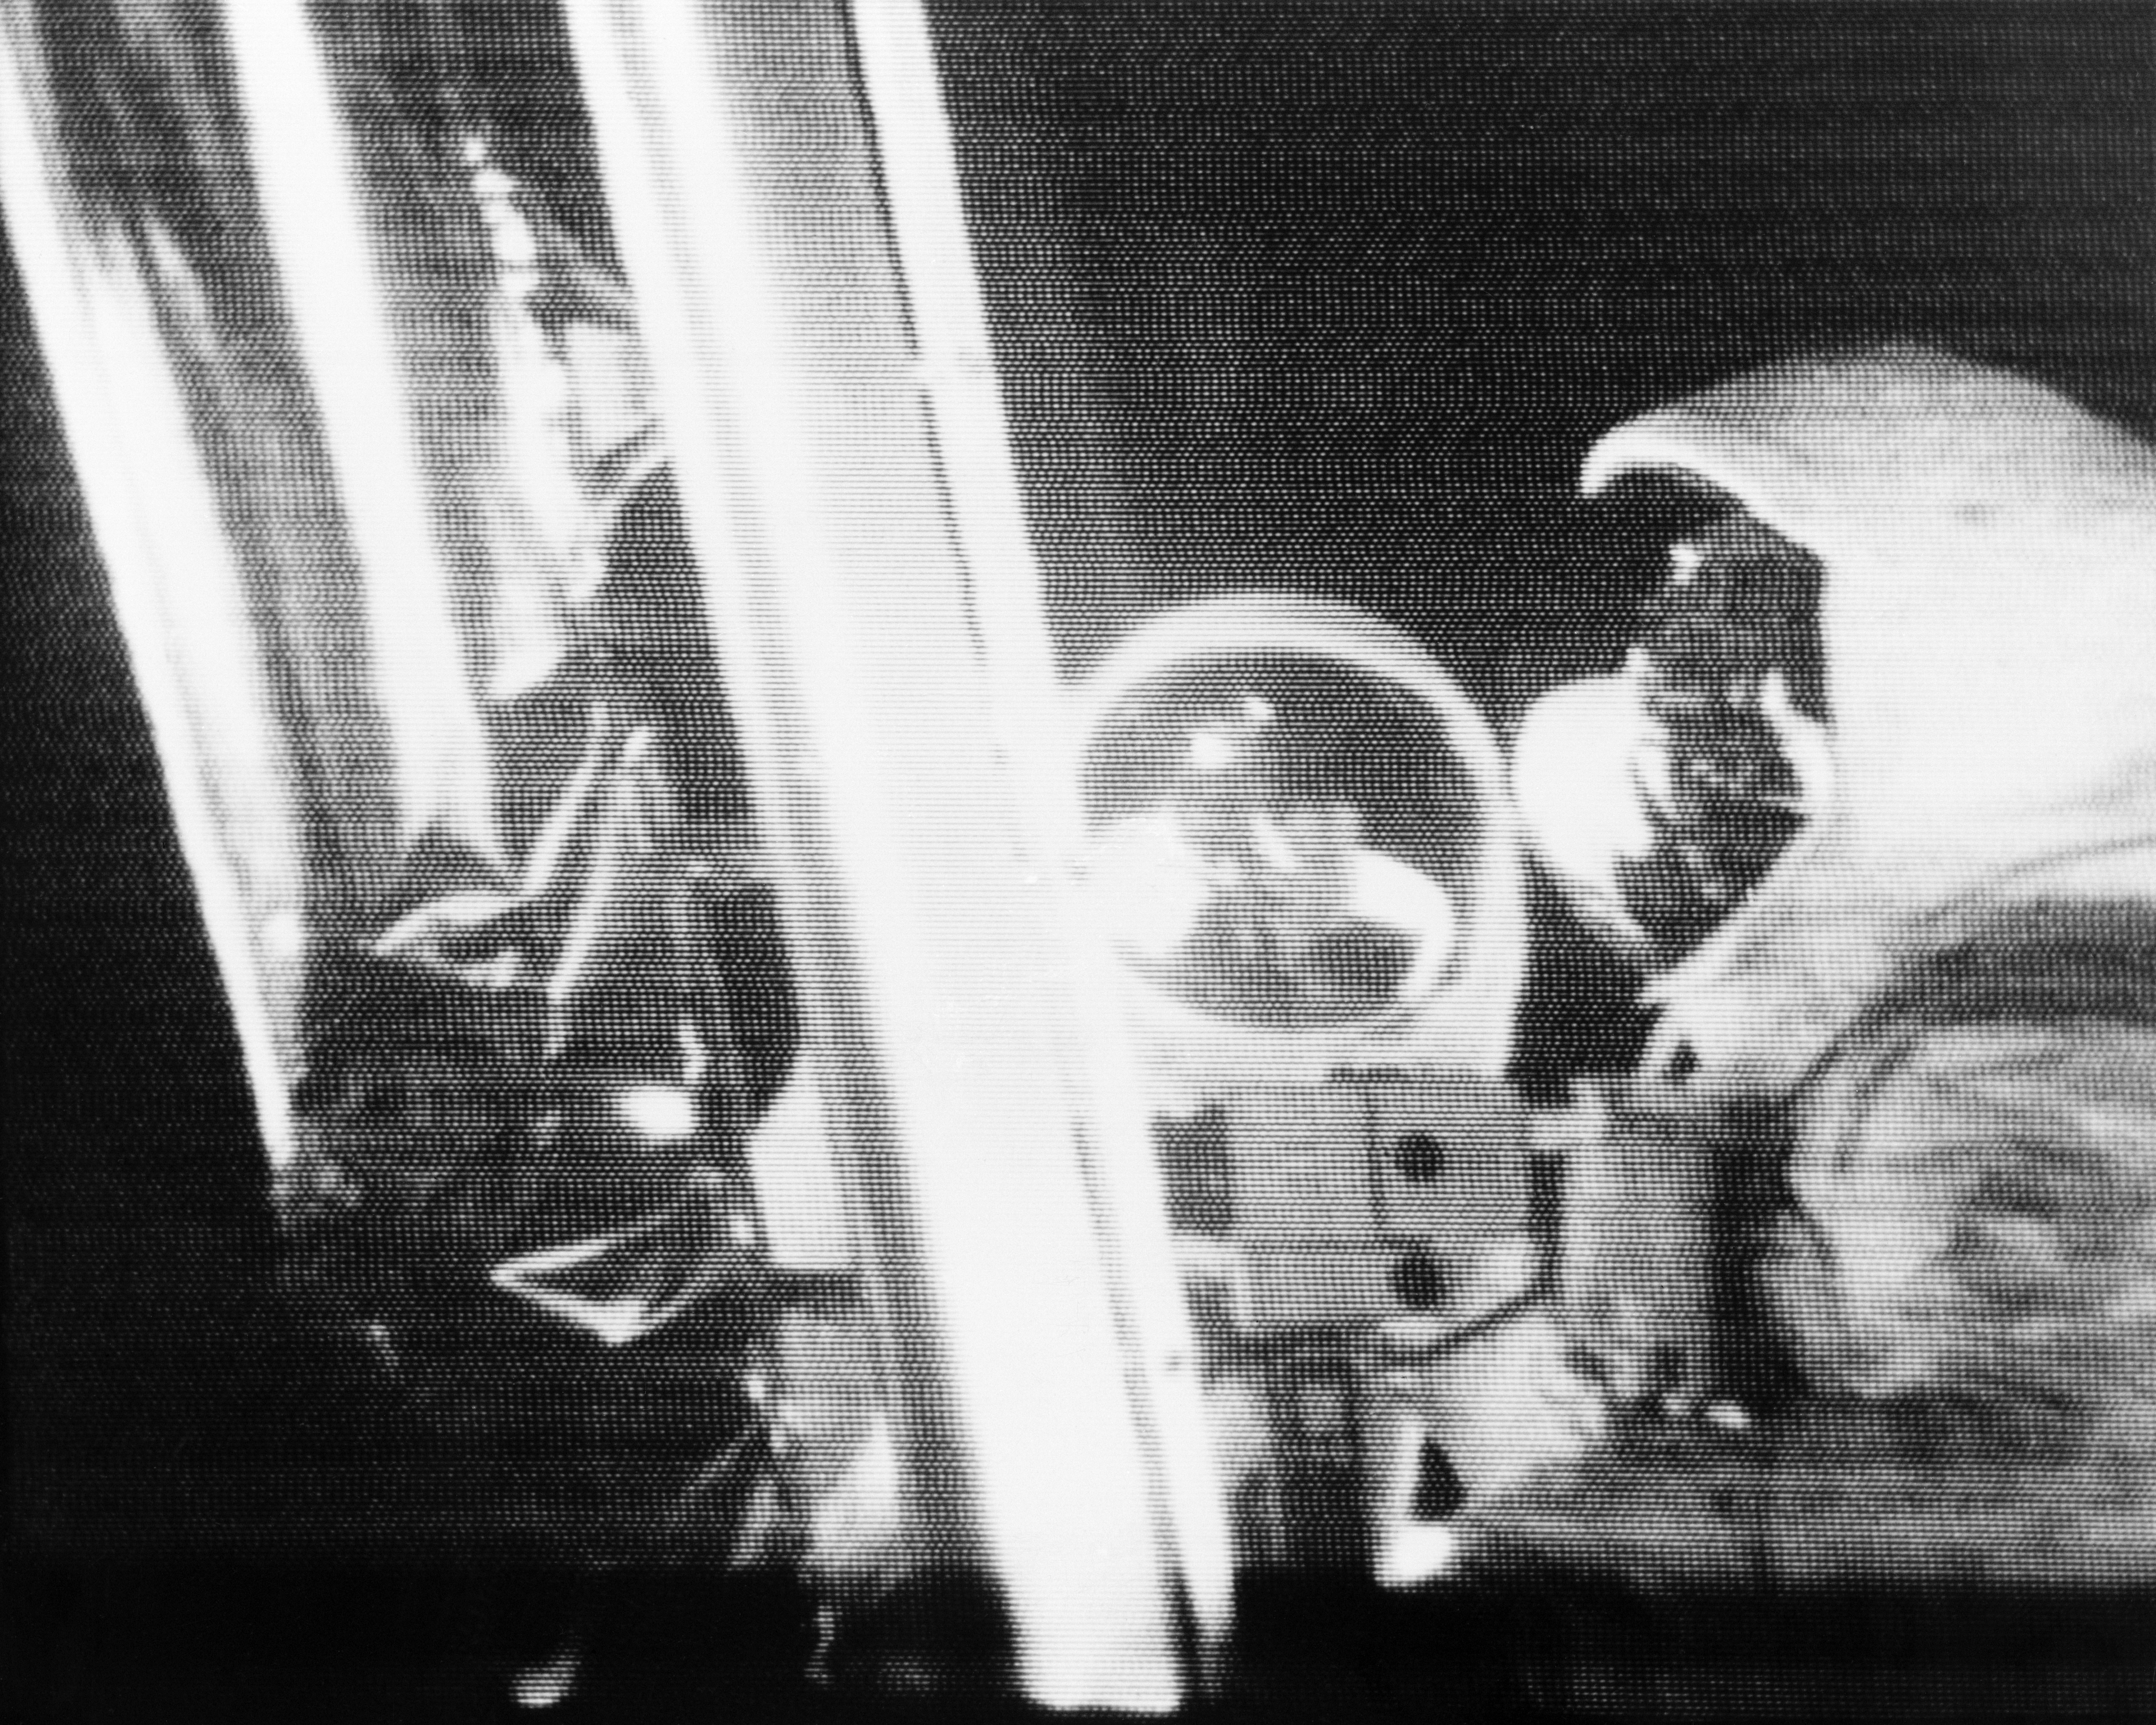 Armstrong and Aldrin in Lunar Module